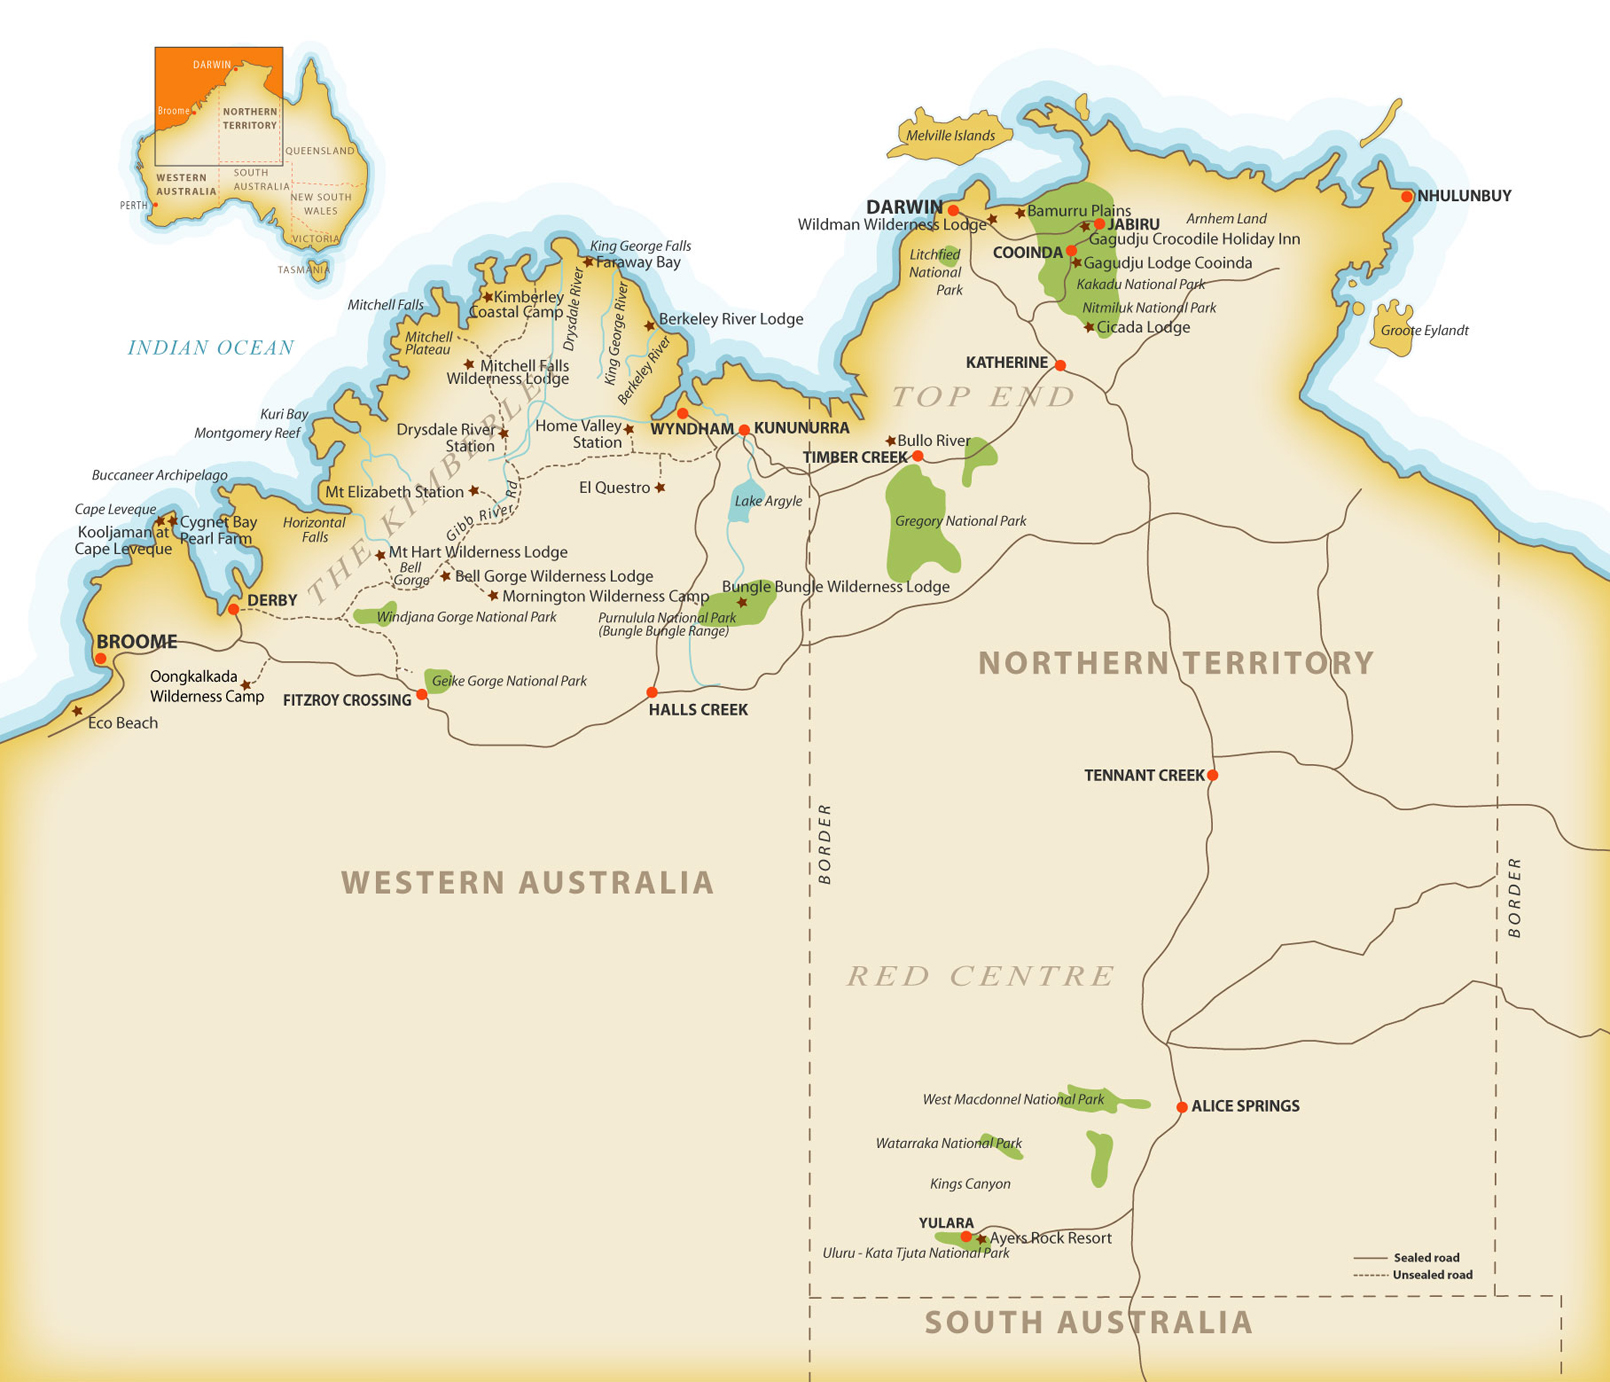 Map of Kimberley region and Northern Territory, Australia